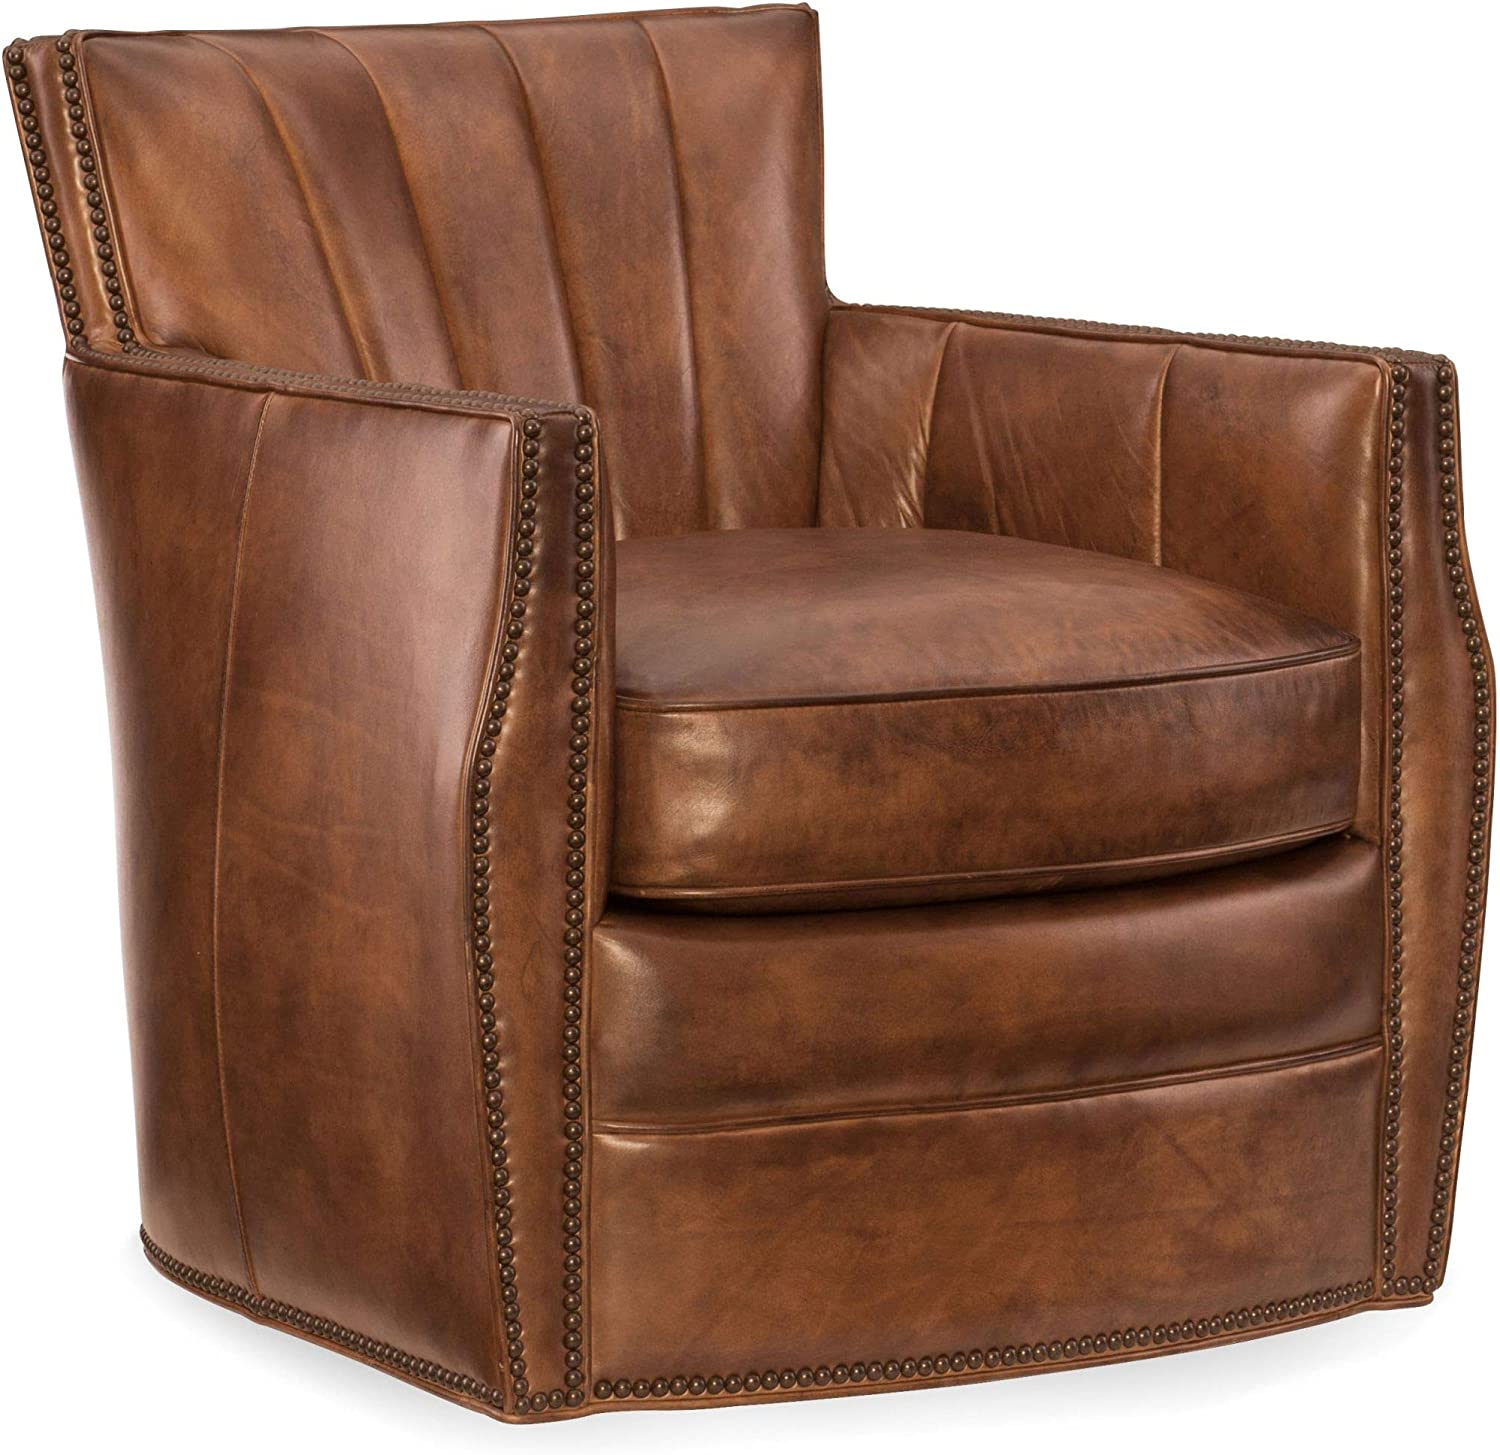 Hooker Furniture Carson Leather Swivel Club Chair in Spice Brown